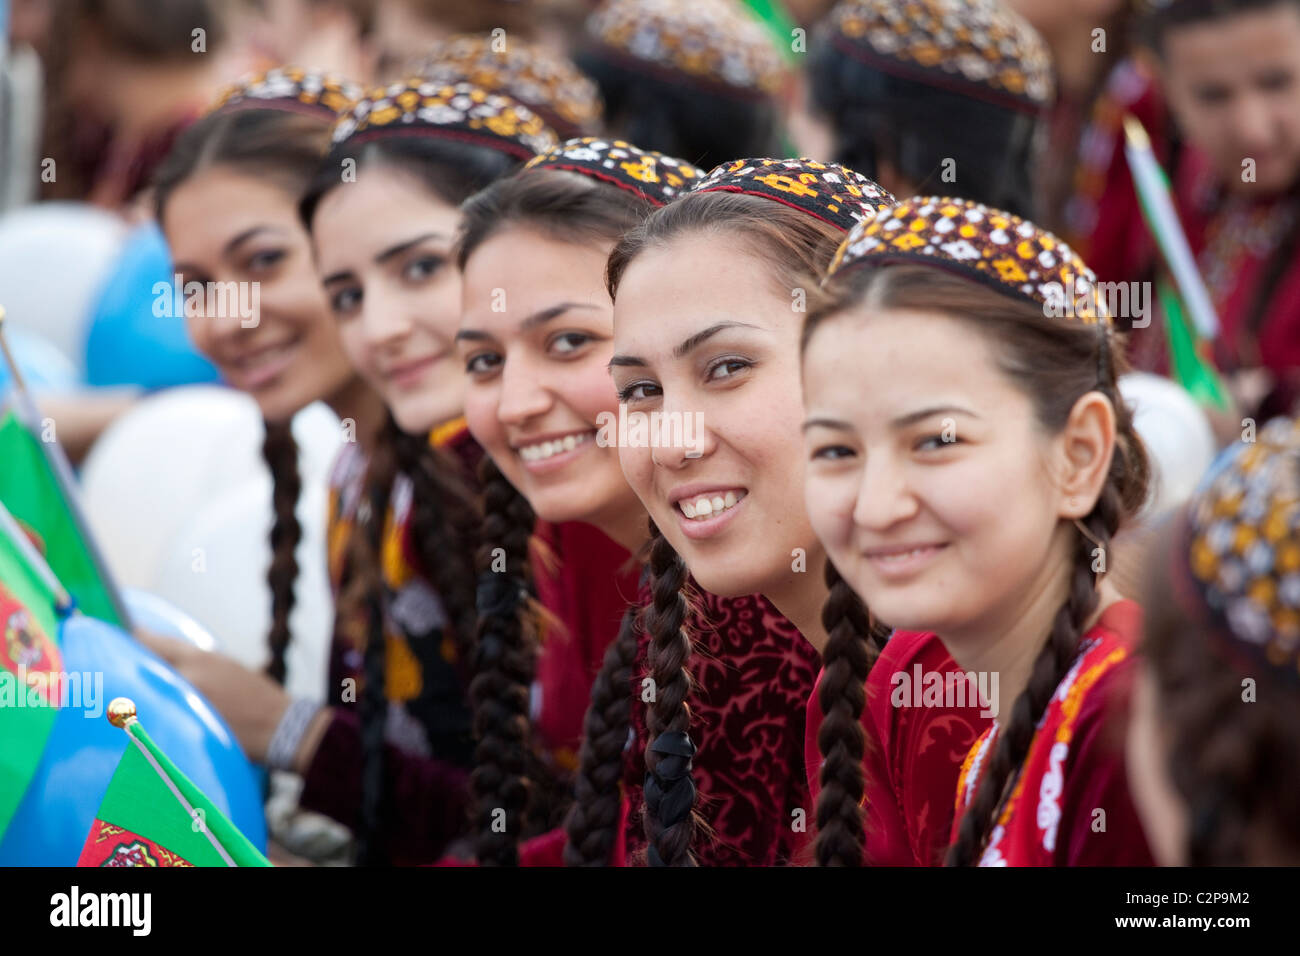 Girls in traditional the national dress of Turkmenistan - Stock Image